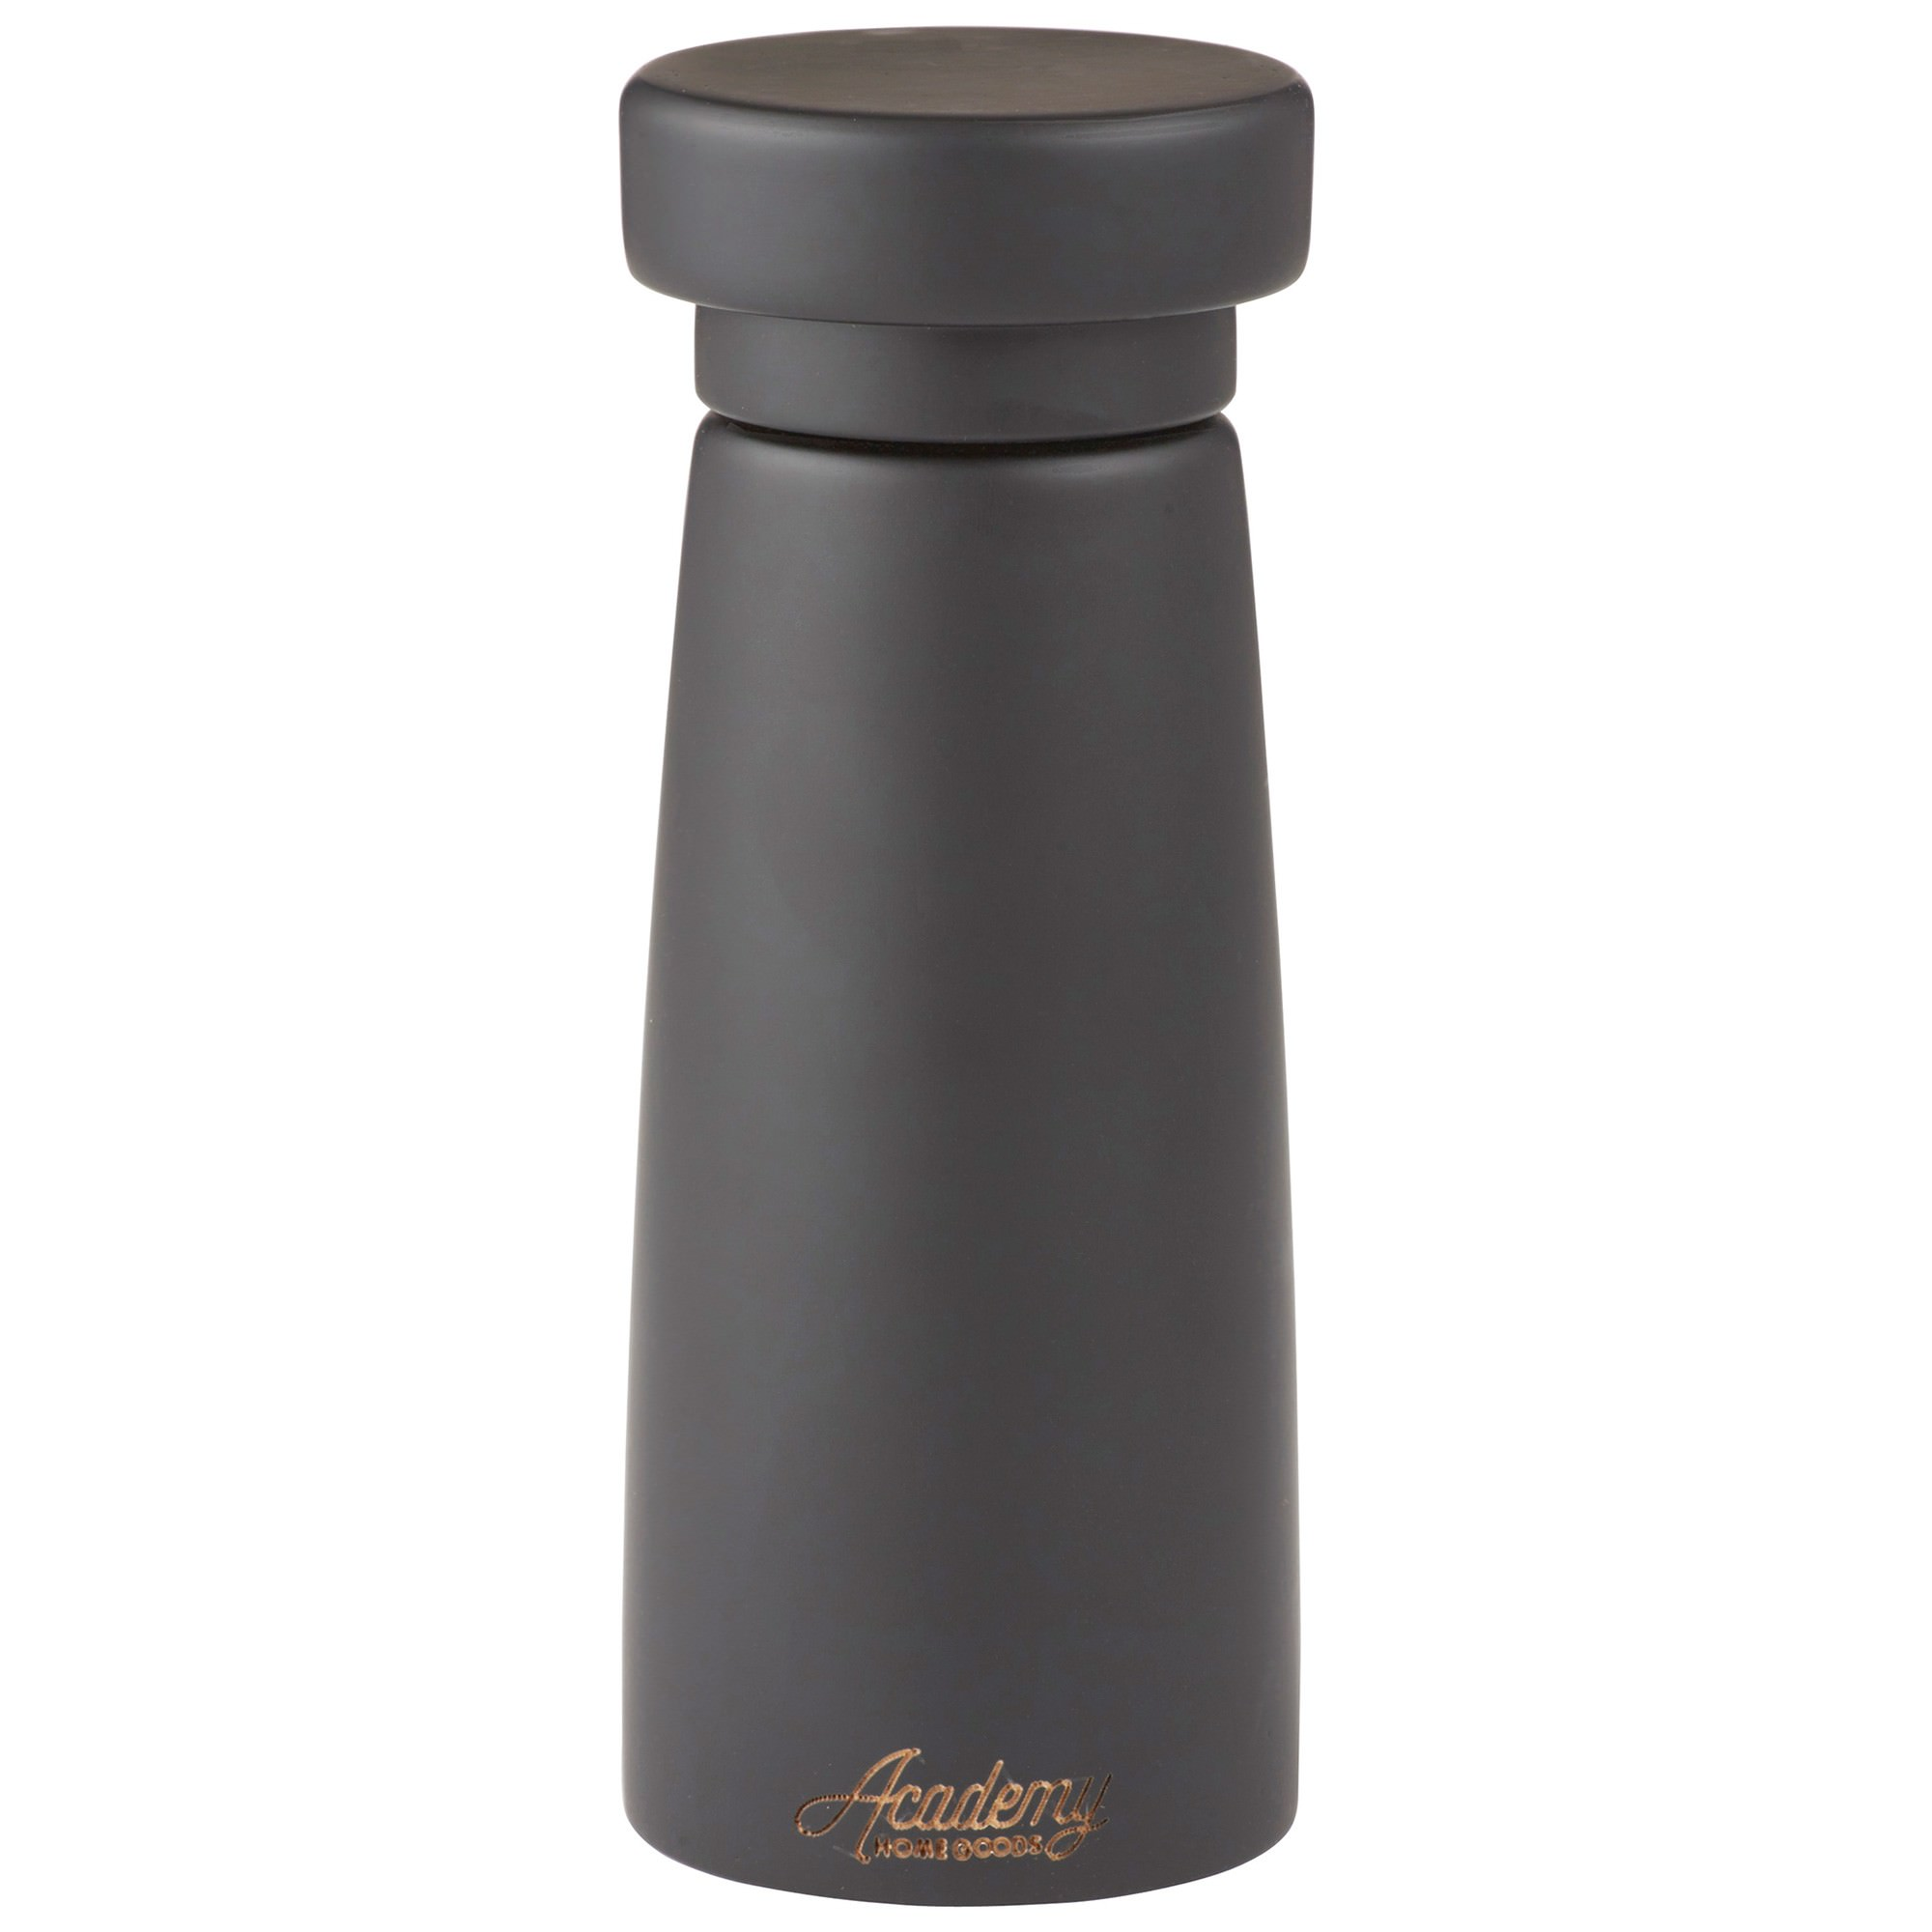 Alcott Wooden Salt / Pepper Mill, Black